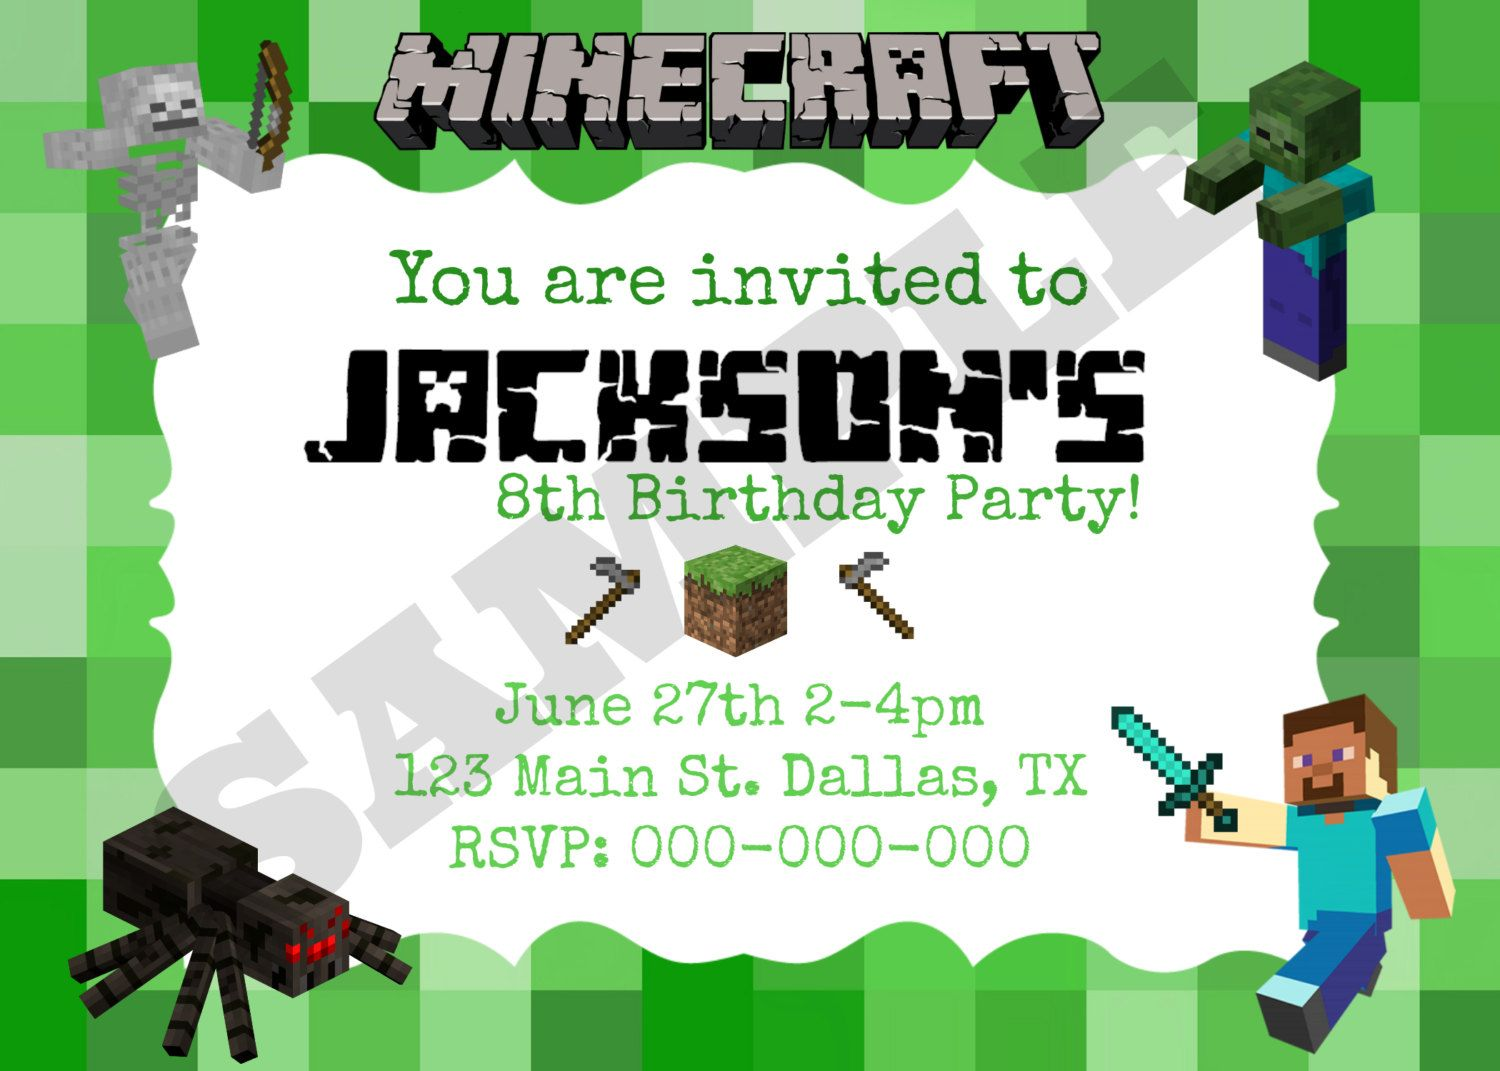 Minecraft Birthday Invitation Template Free Minecraft Birthday Invitations Birthday Party Invitations Free Printable Birthday Invitations